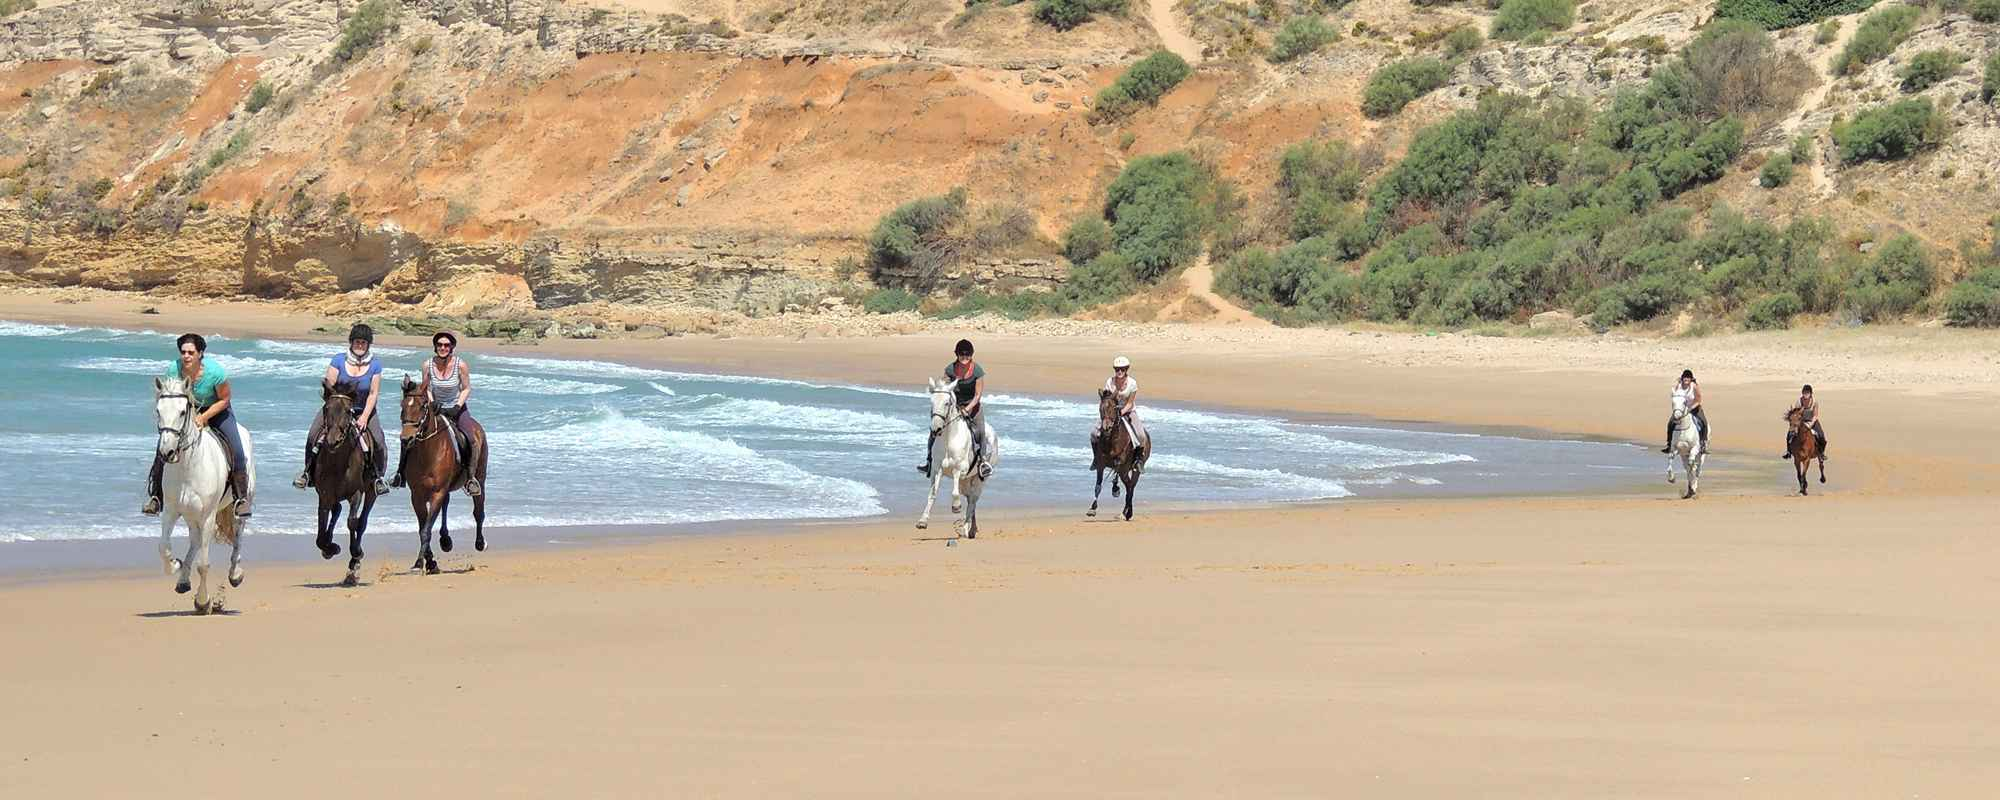 Equestrian vacation in the Cadiz province in Spain.